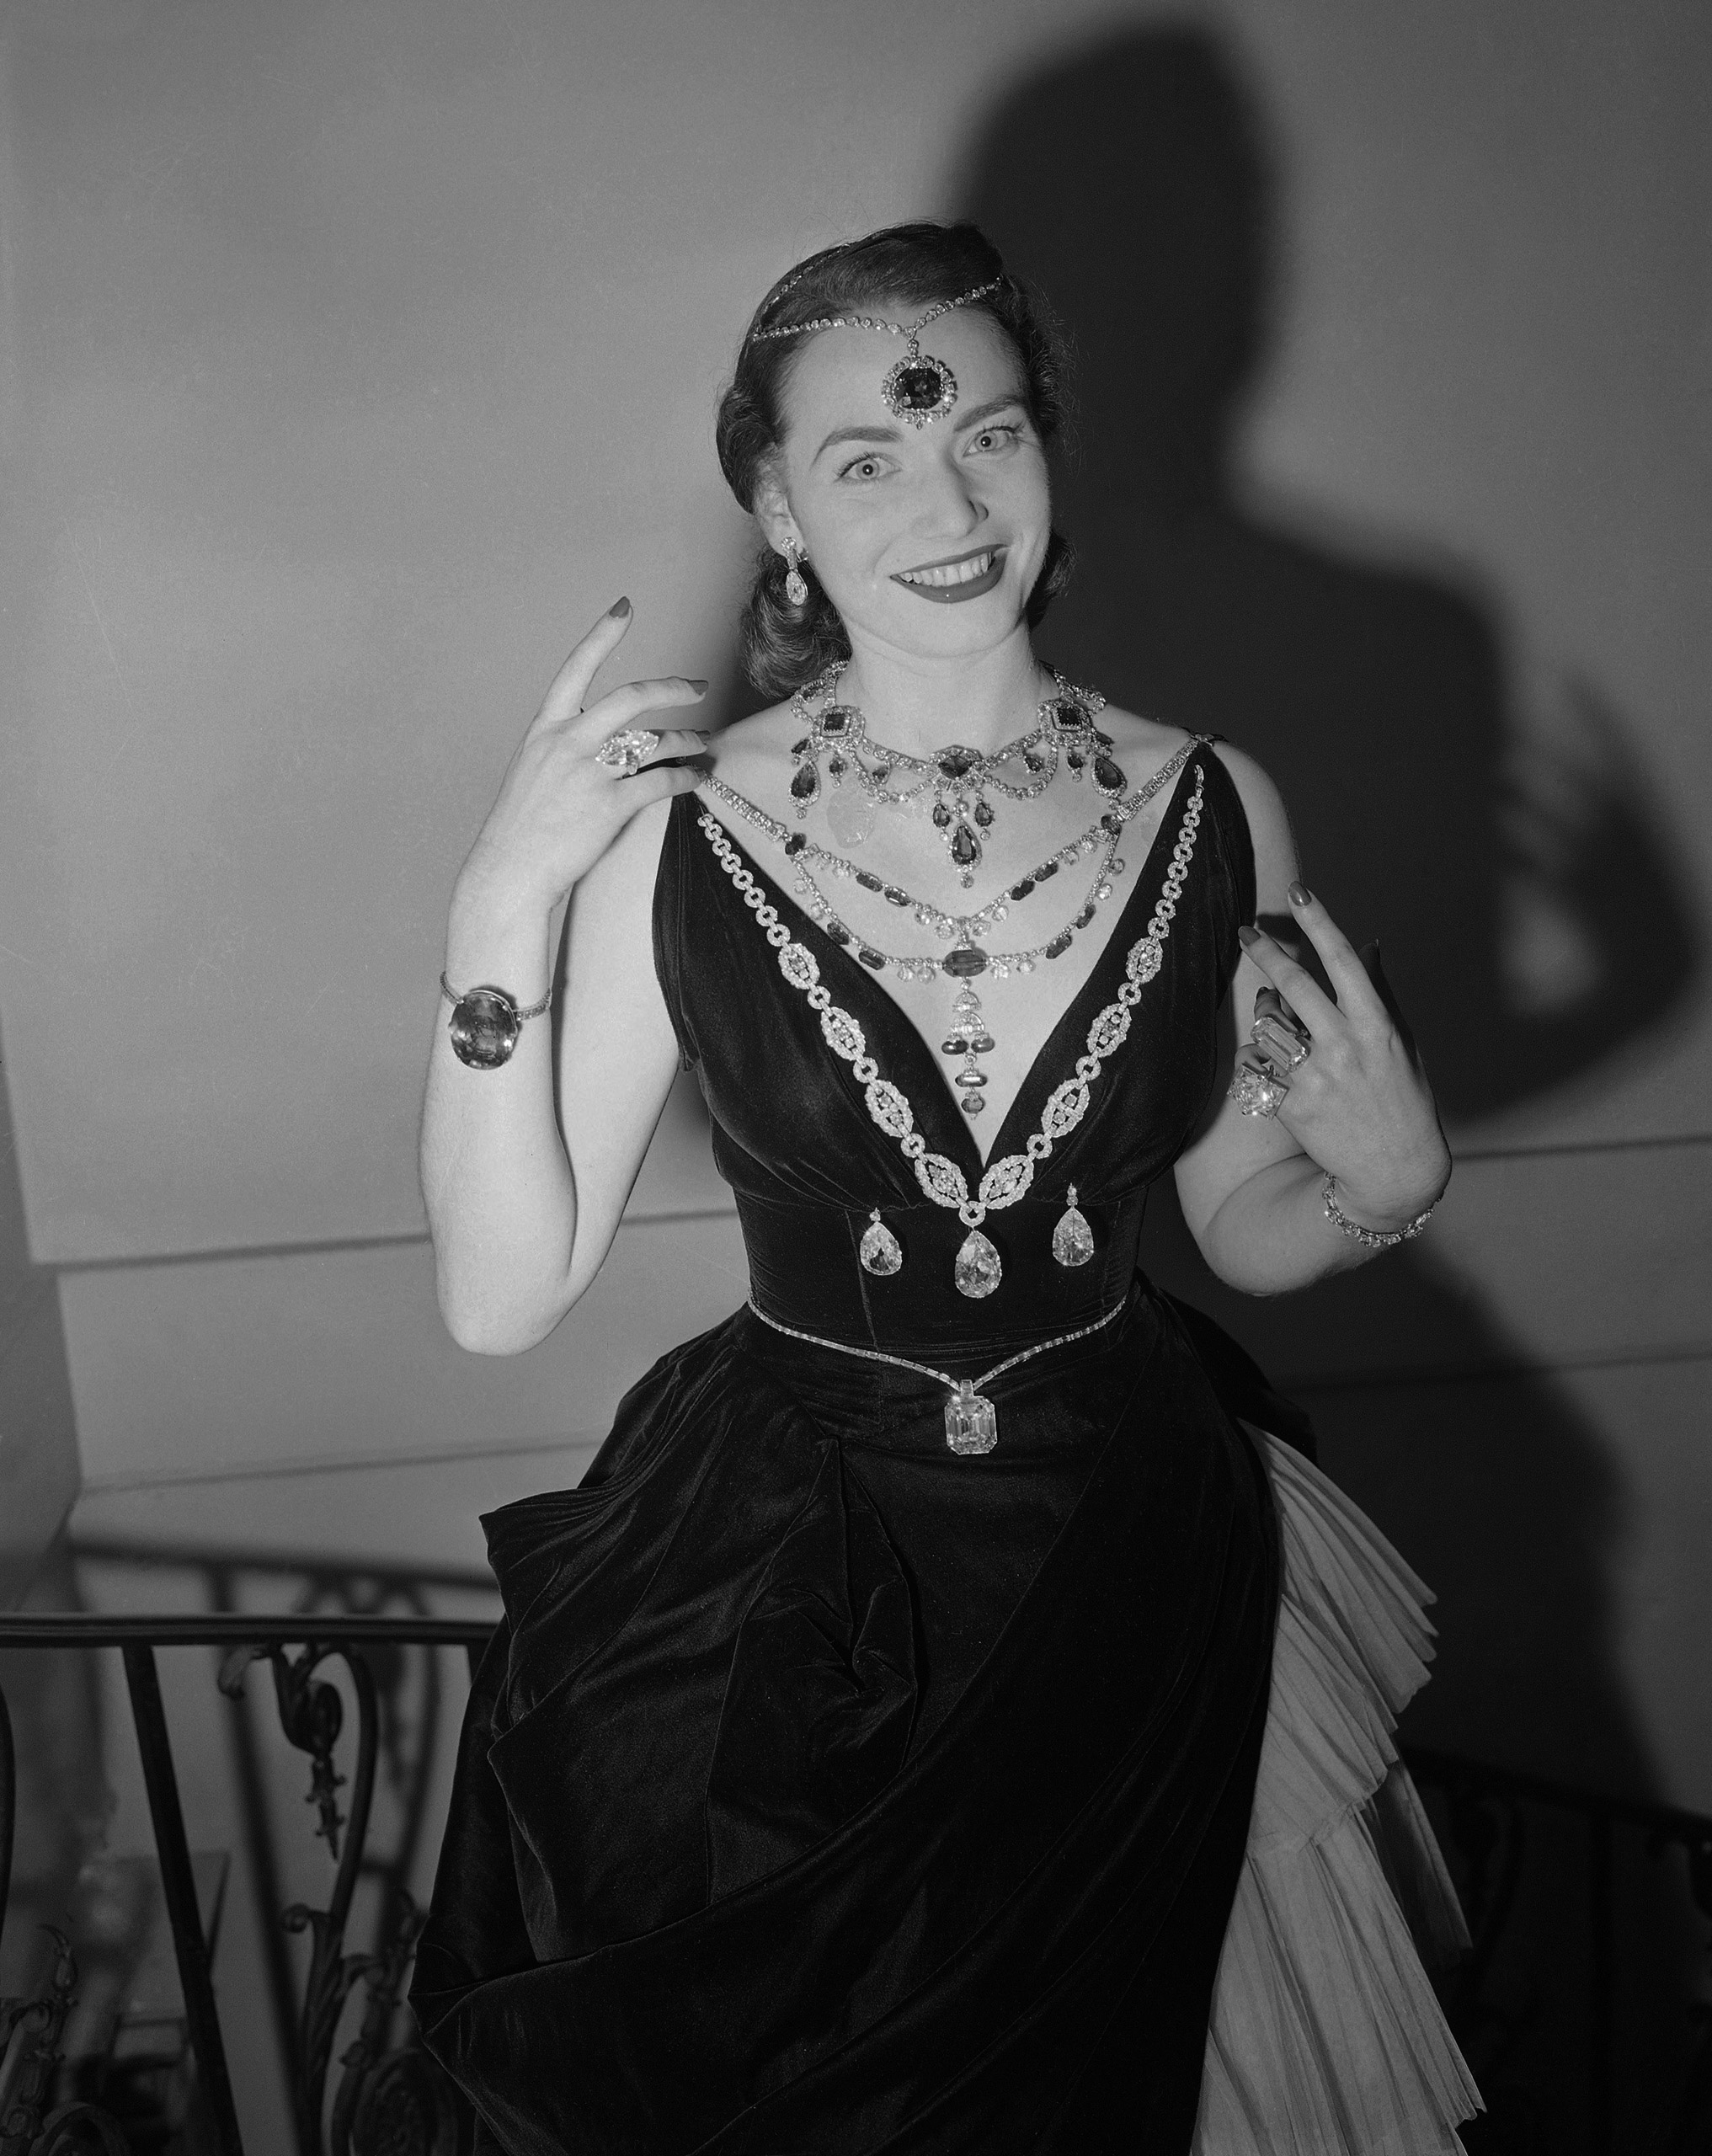 Model Mara Byron displays jewels valued at $ 10,000,000 at a preview of a United Hospital Fund art project exhibition in New York,  November 17, 1949. On her forehead is the Hope Diamond, 44 carats.  Pear-shaped diamond earrings are 30 carats each.    Necklaces from top to bottom are Earl of Dudley emeralds, the Spanish Inquisition period emerald and diamond necklace and, attached to a diamond necklace, the 100-carat Star of the East Diamond. Flanking the latter are two pear shaped largest perfectly matched twin diamonds, in the world, totaling 100 carats.   Below the Star of the East is the 126-carat Jonker Diamond.   On the right arm is the largest sapphire in the world, 337 carats.   On third finger right hand is the marquise ring, over 40 carats.    On left arm is 100-carat diamond bracelet made of diamonds from the Gary estate.  On the third finger left hand is 60-carat Mabel Boll ring.  On small finger is the 35-carat McLean ring.